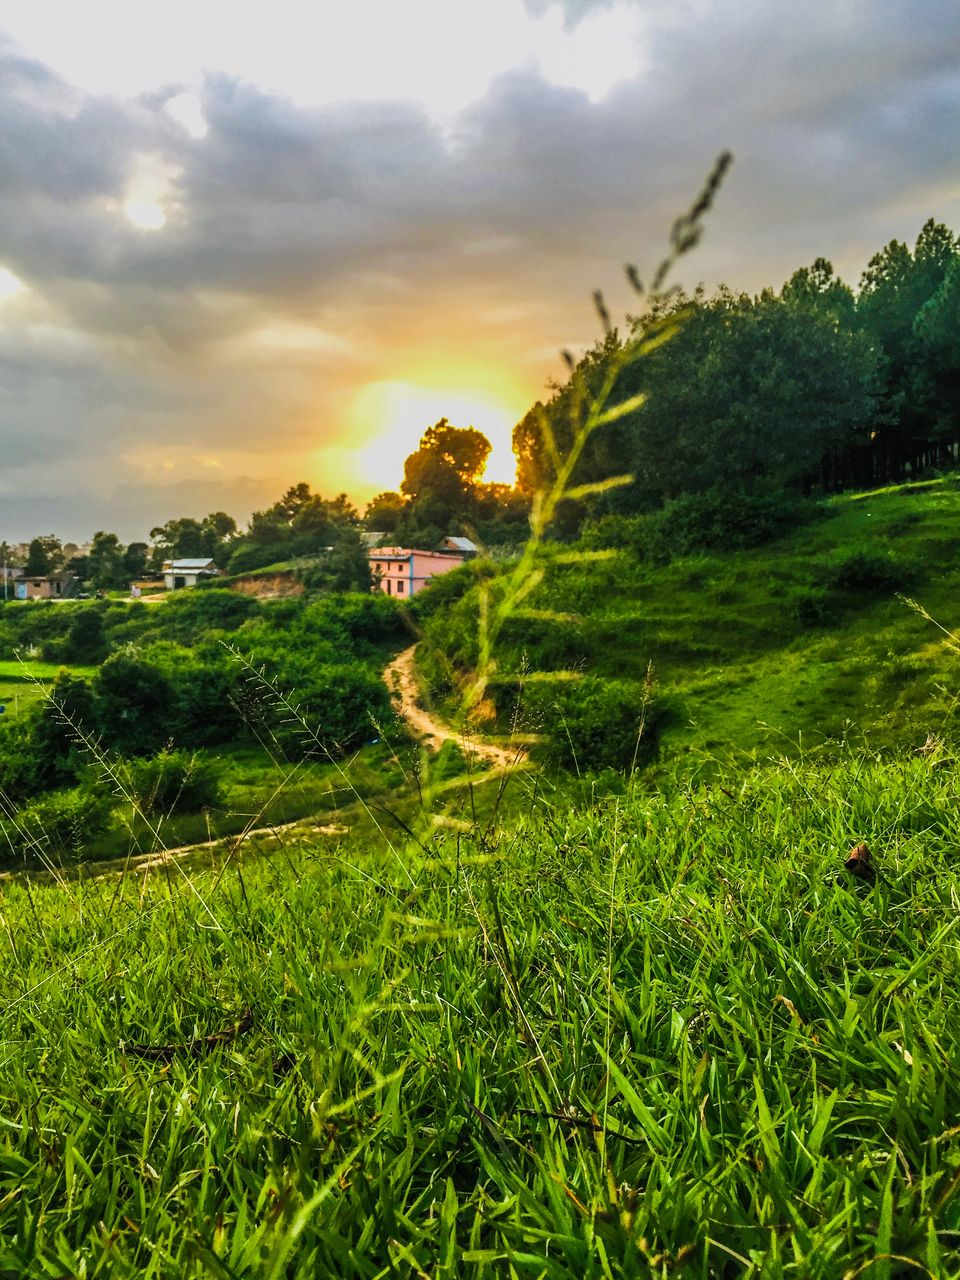 plant, sky, beauty in nature, green color, landscape, tranquility, growth, cloud - sky, tranquil scene, environment, scenics - nature, land, field, nature, sunset, tree, grass, no people, rural scene, sunlight, outdoors